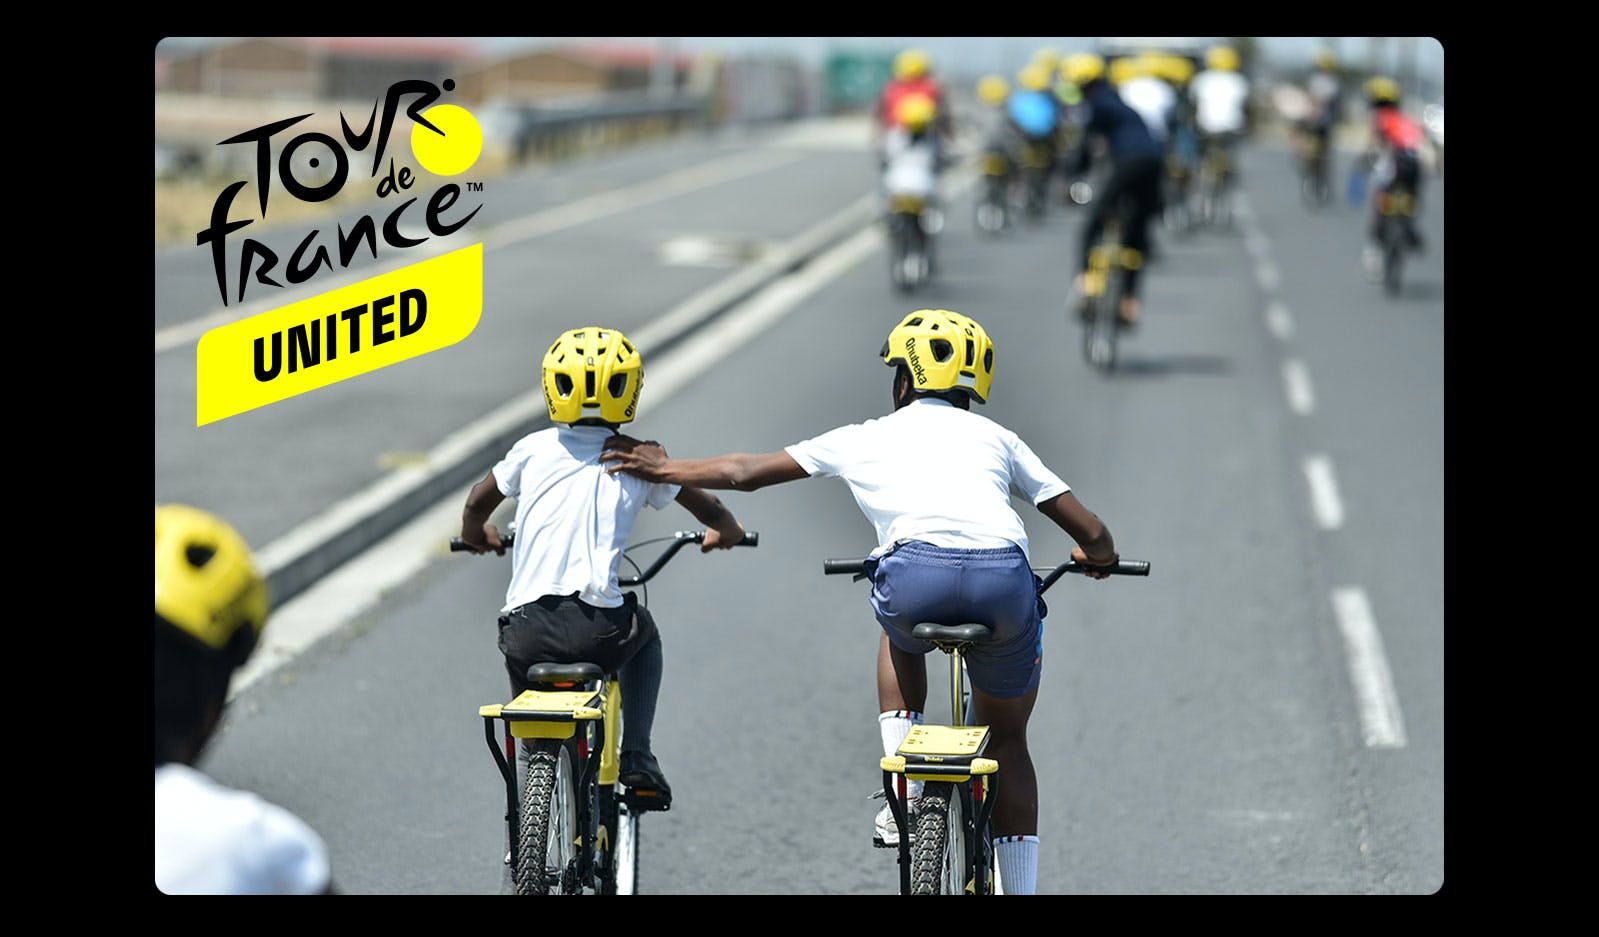 tour de France Opens in new window